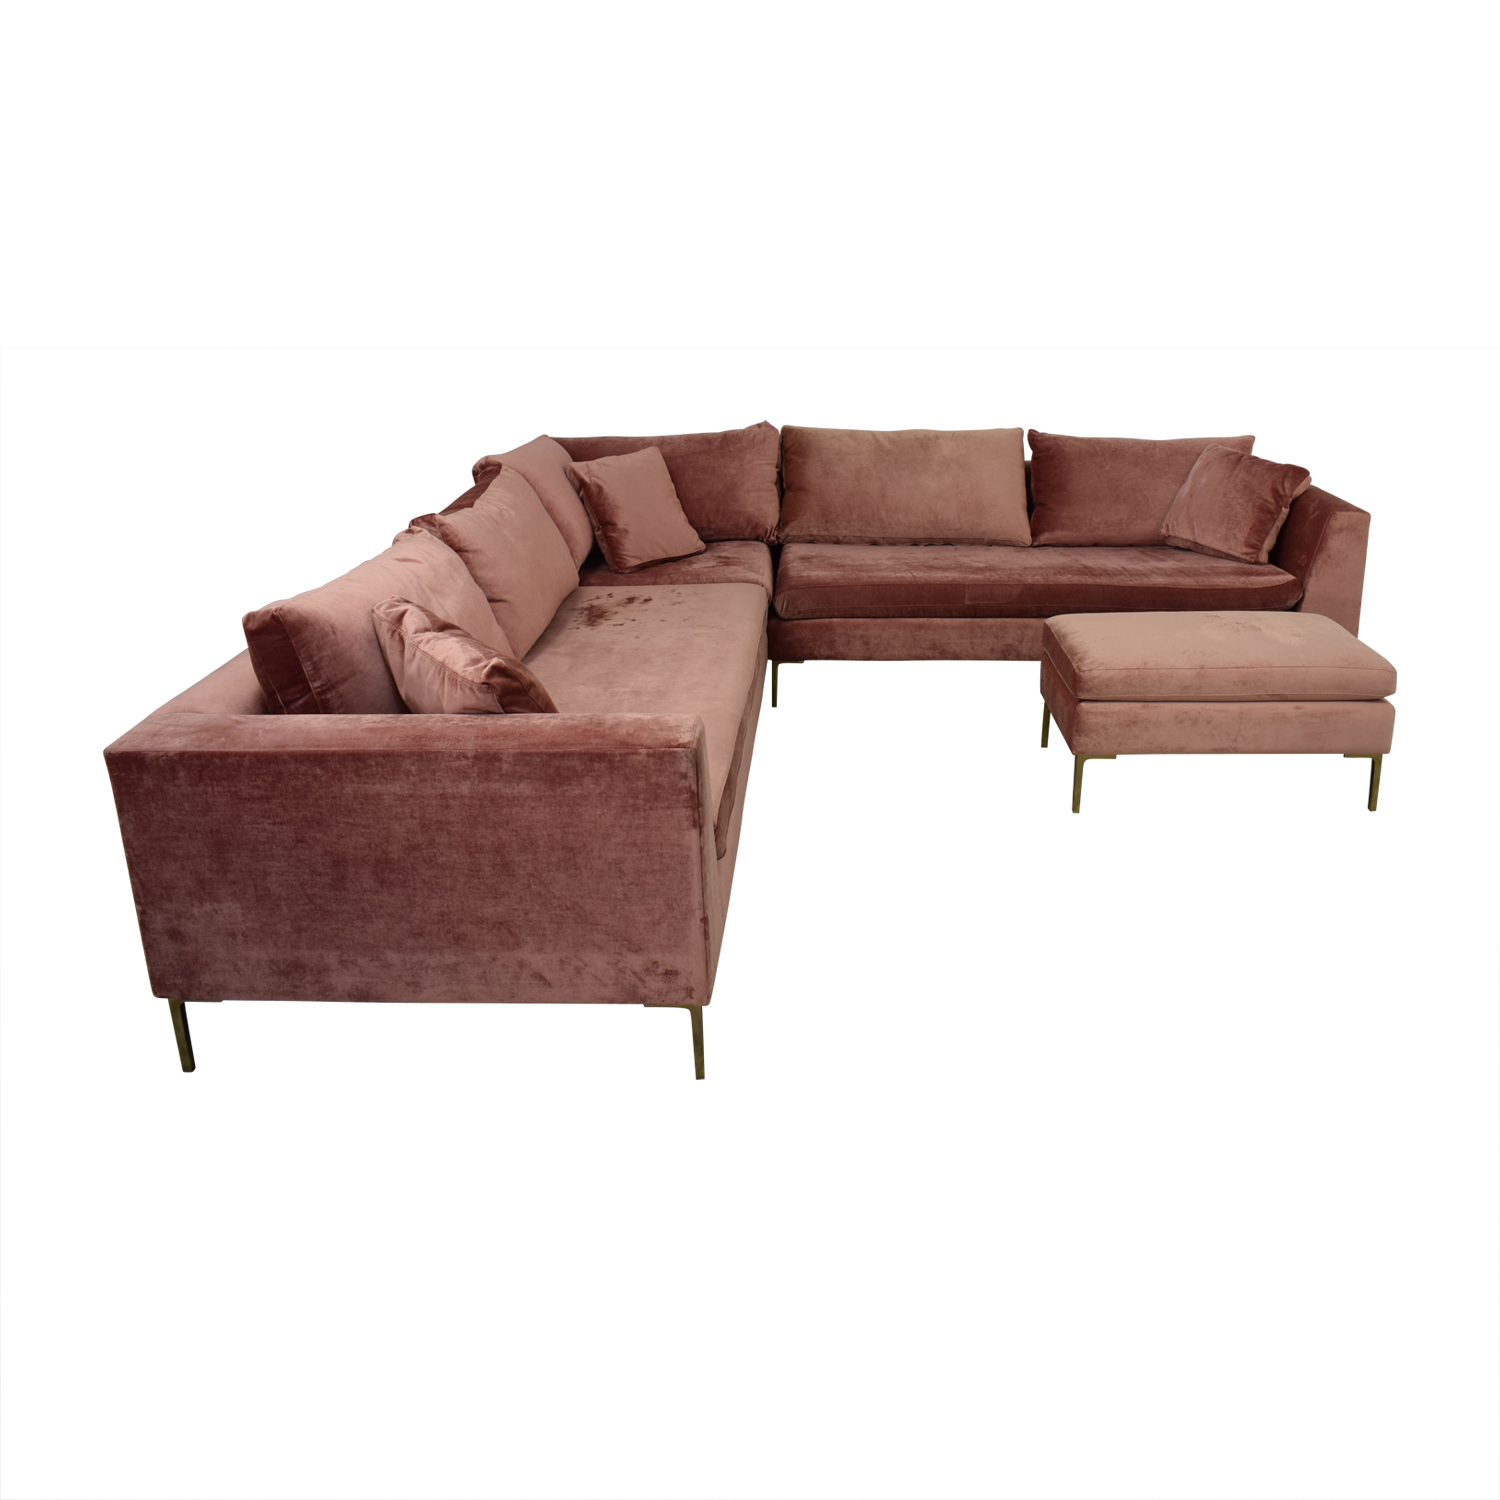 85 Off Anthropologie Anthropologie Edlyn Pink Sectional With